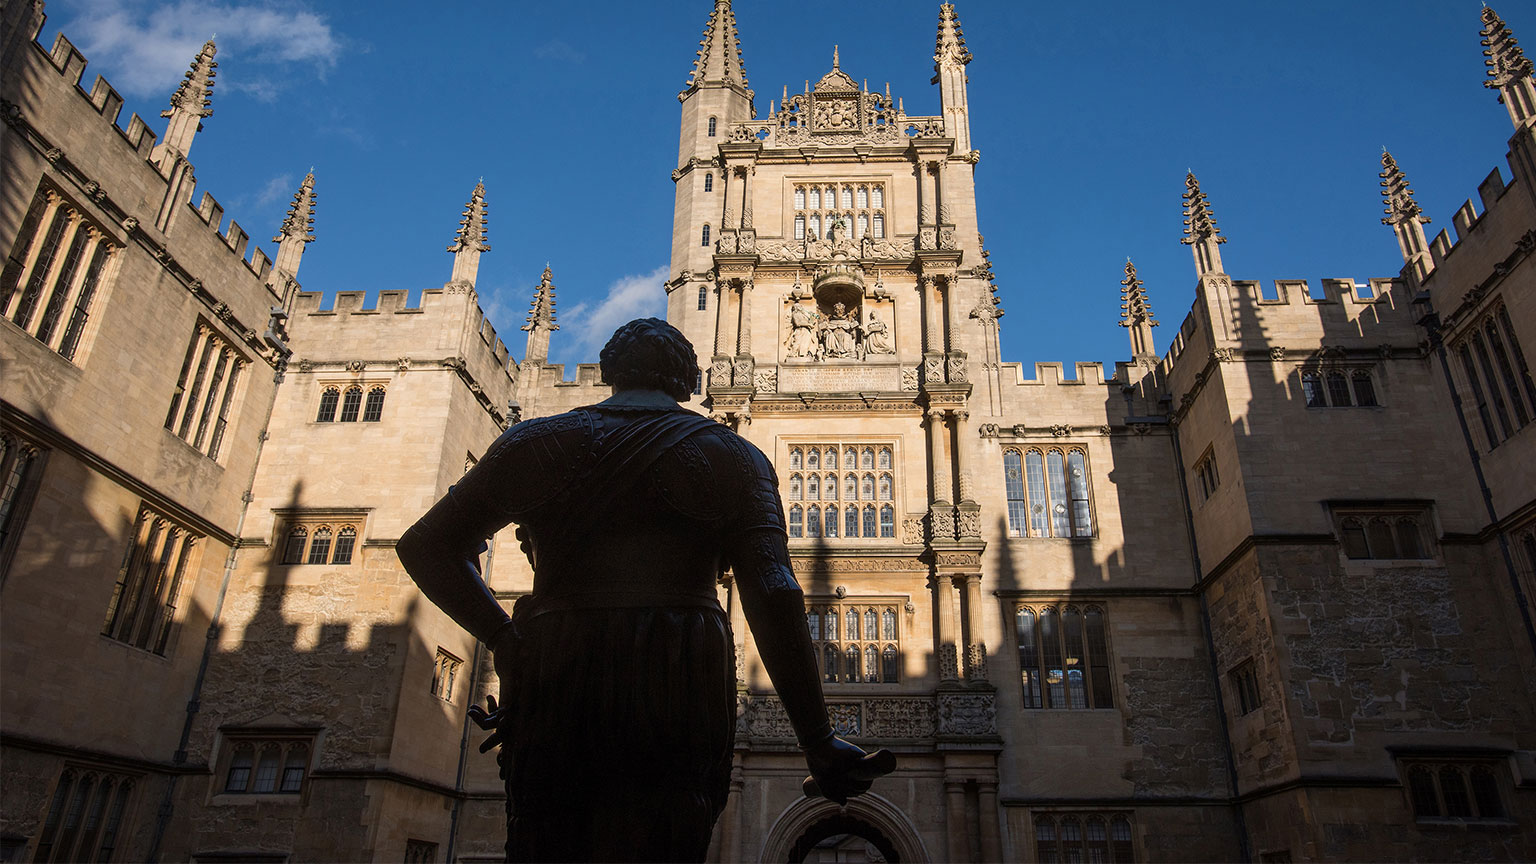 Silhouette of the Earl of Pembroke statue against the Bodleian Library Tower of Five Orders